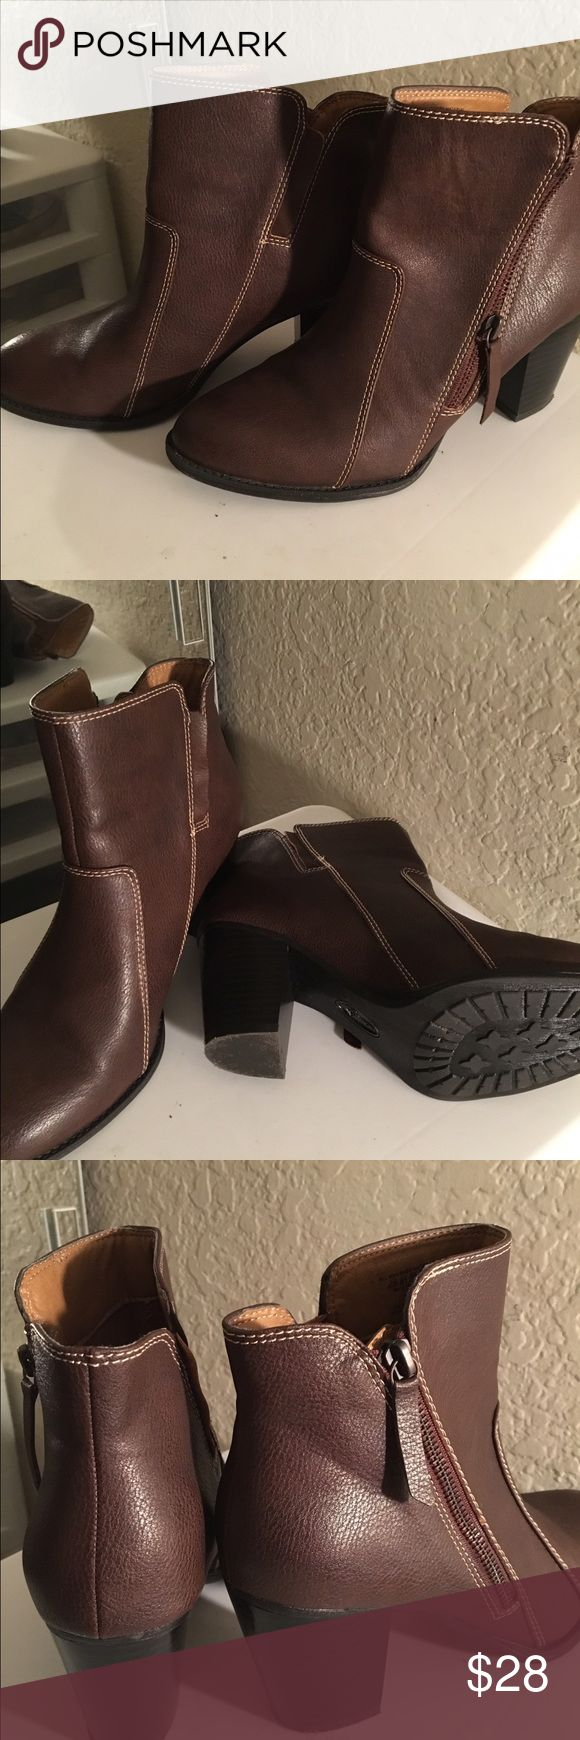 Ladies ankle boots Just like new, worn 1 time, soft brown leather like, ankle boots. Zipper on the outside, 3 inch heel. Really cute with leggings & jeans 🤗 Covington Shoes Ankle Boots & Booties